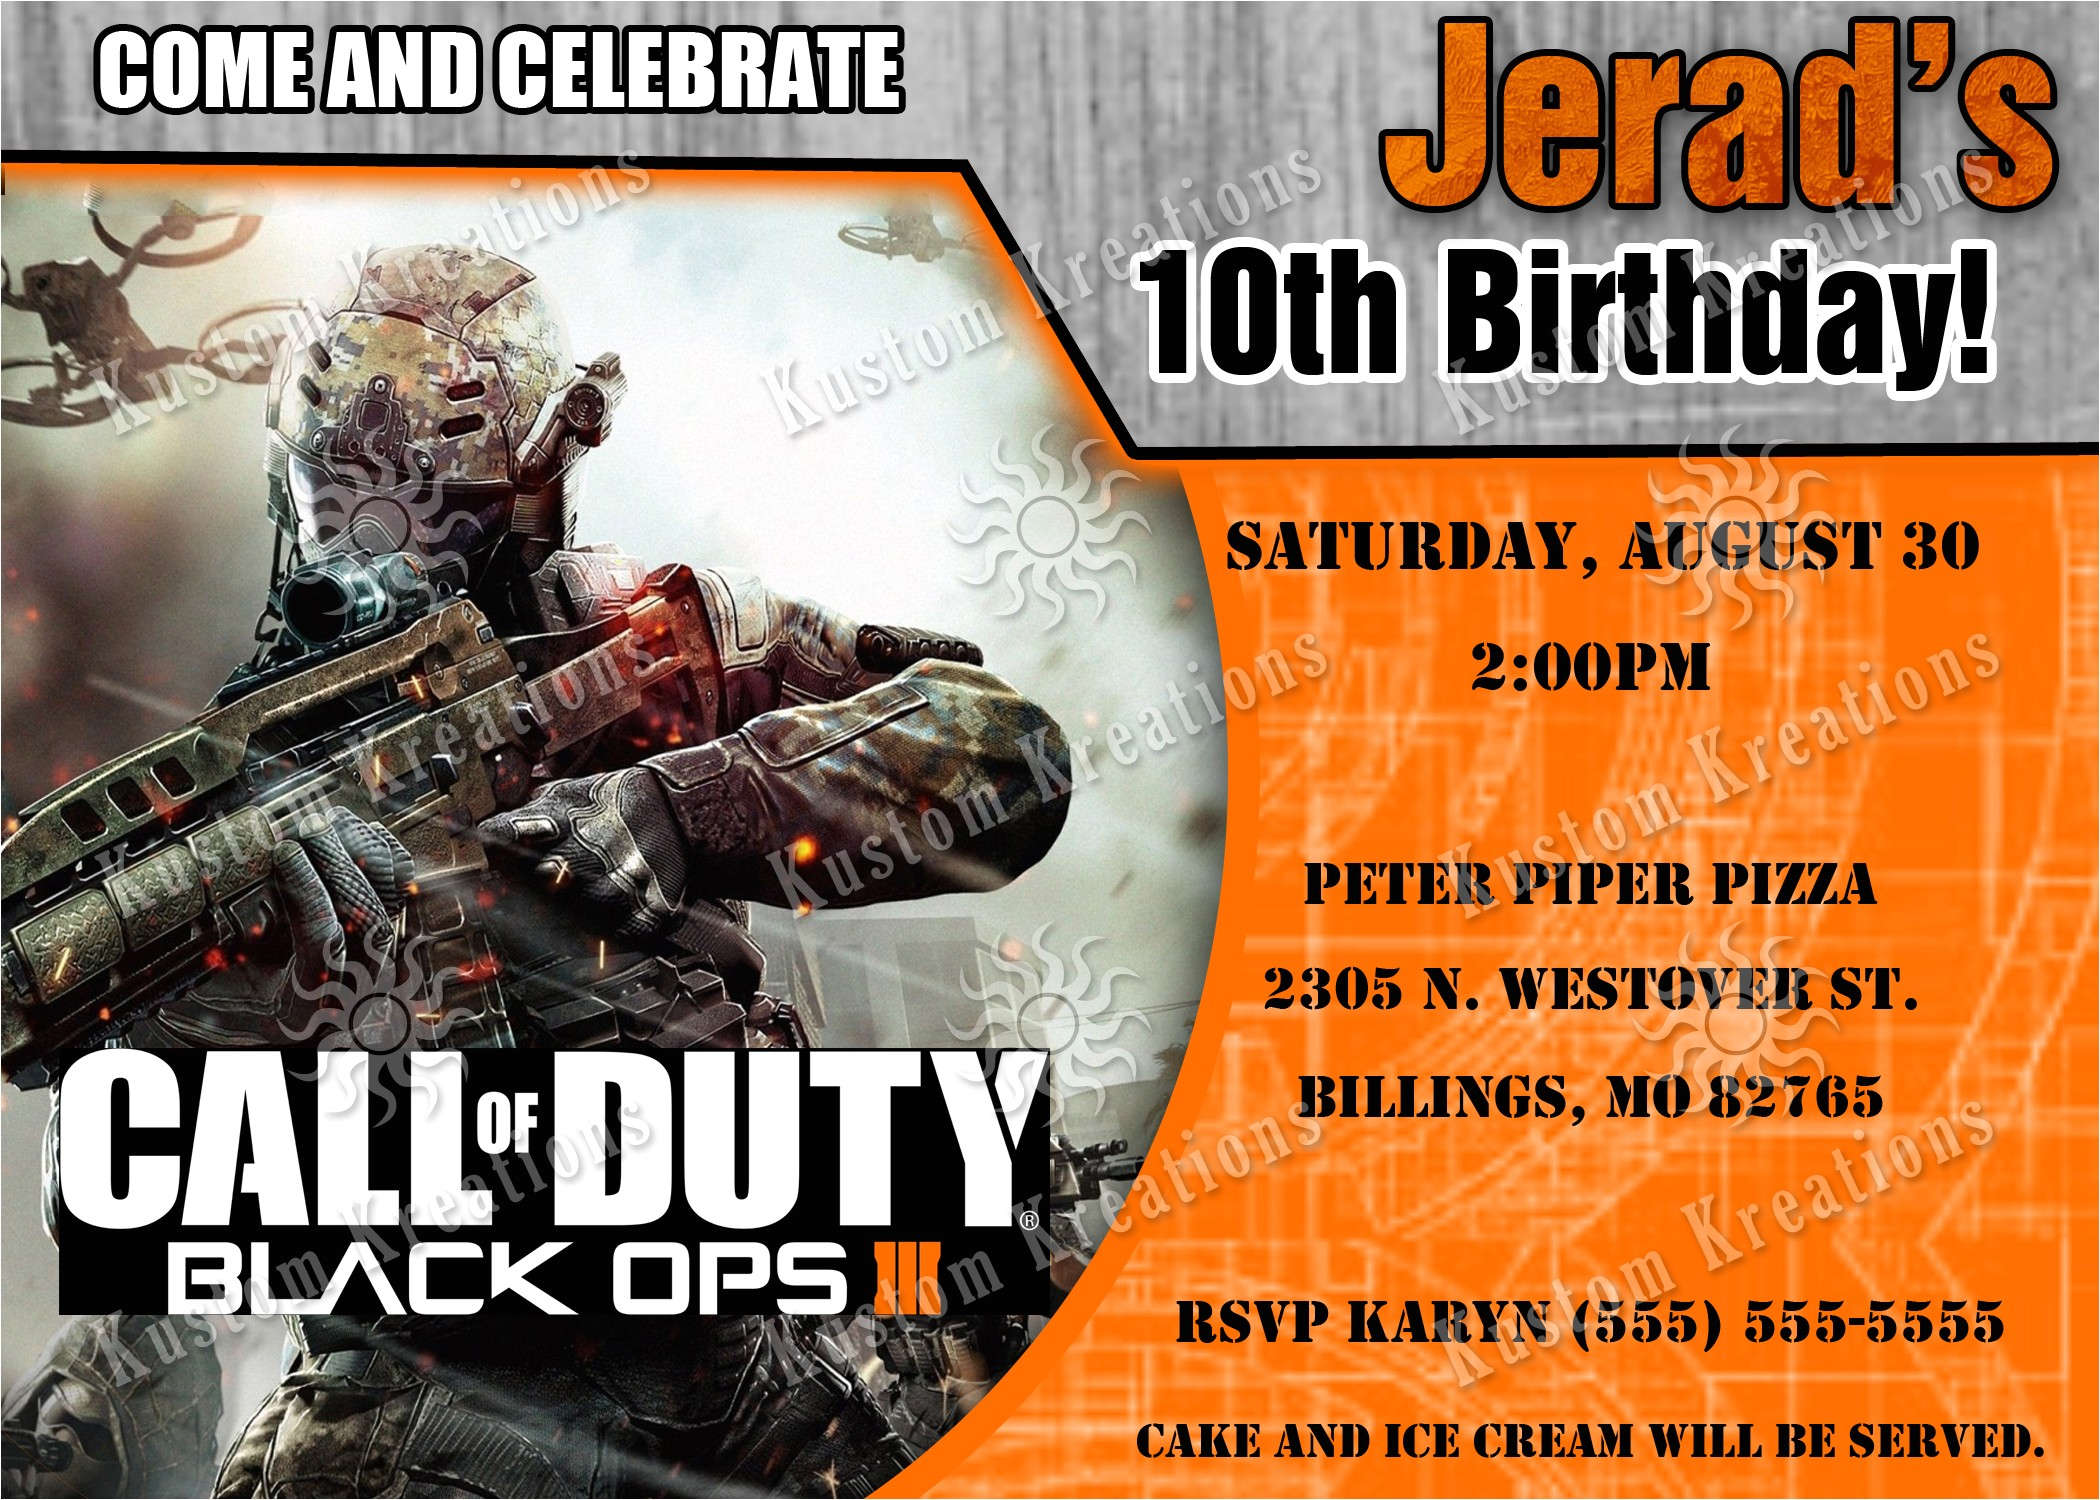 call of duty black ops 3 birthday invitation